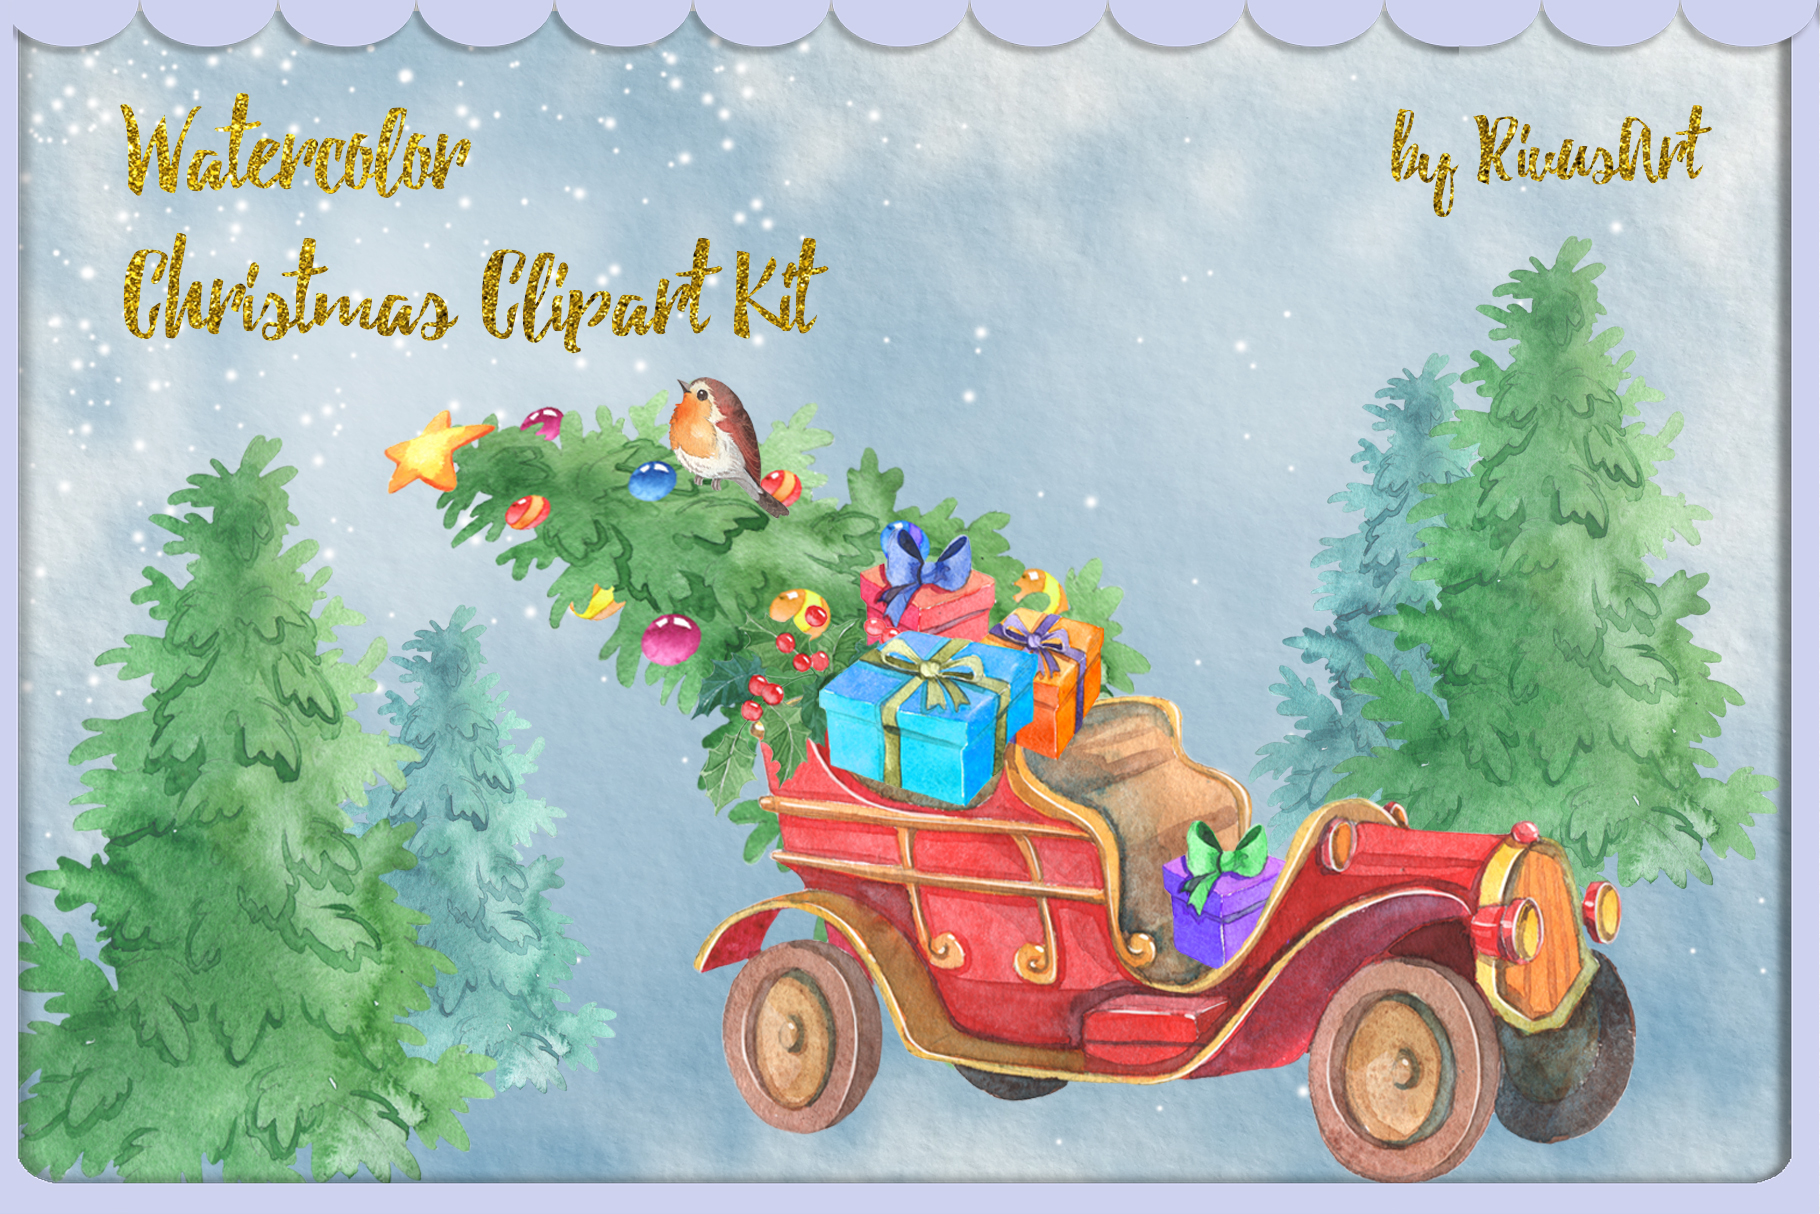 Watercolor Christmas clipart set example image 4